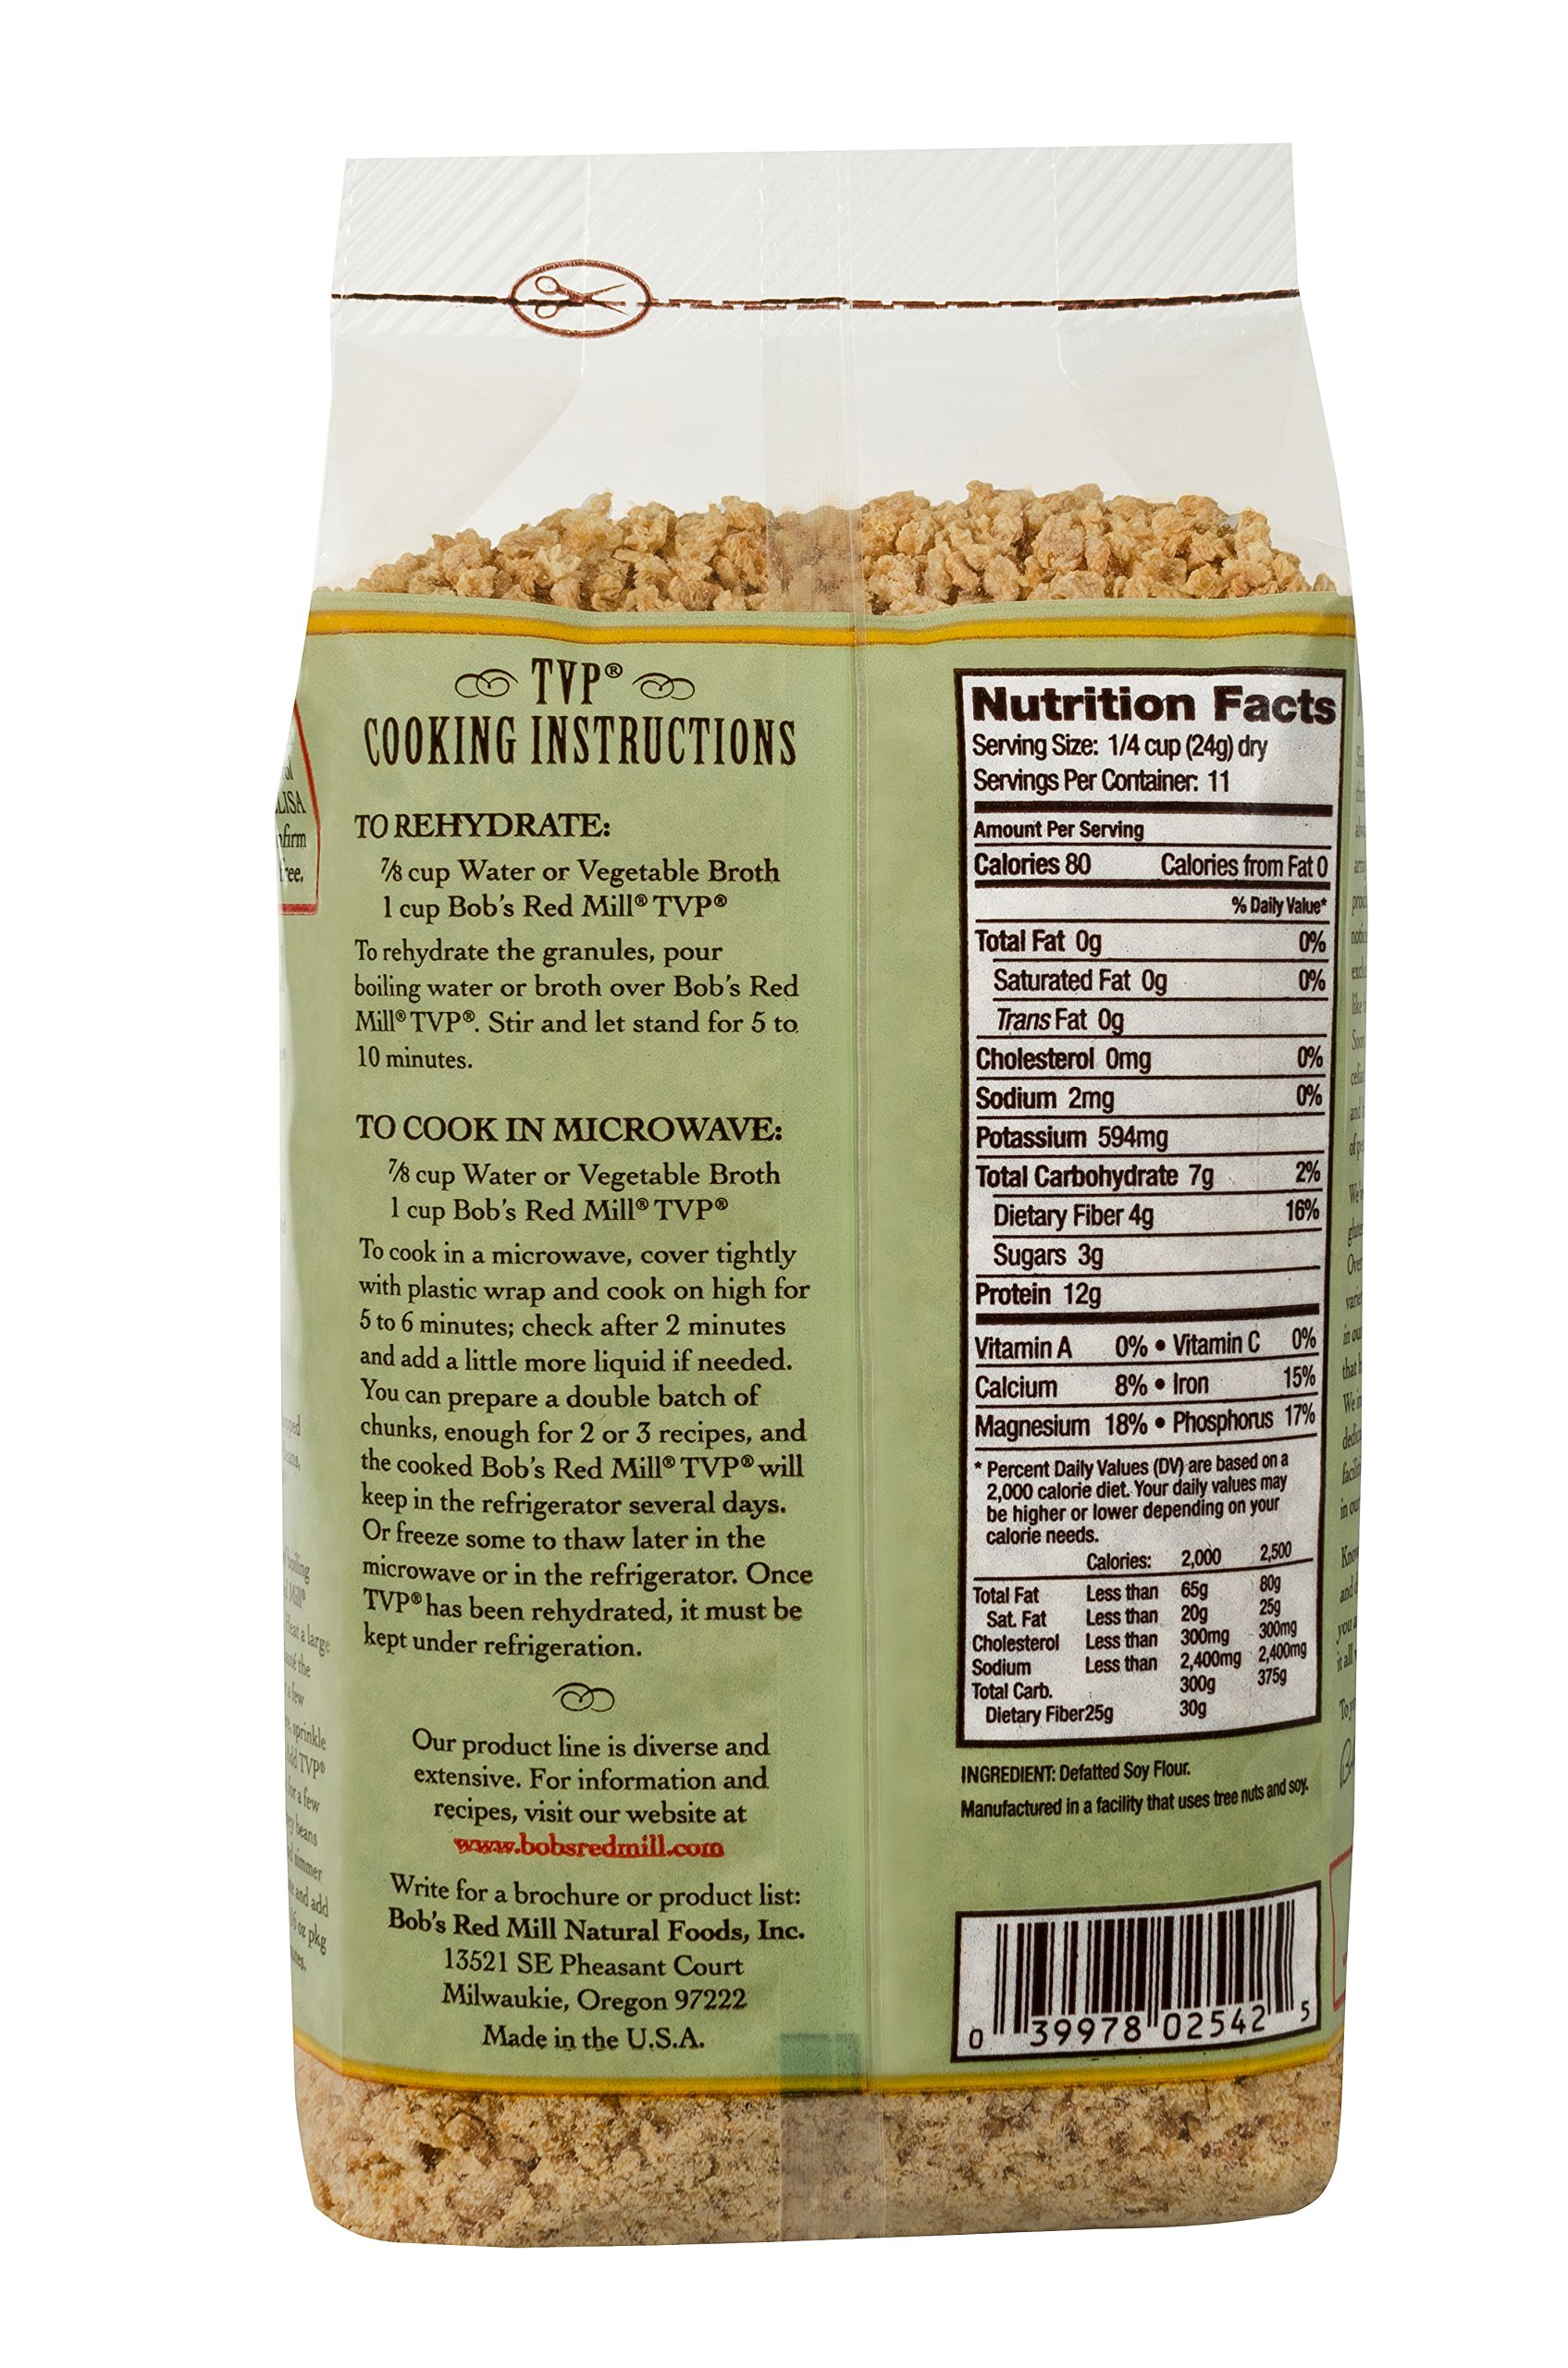 Bob's Red Mill, Texturized Vegetable Protein, 10 oz by Bob's Red Mill (Image #3)